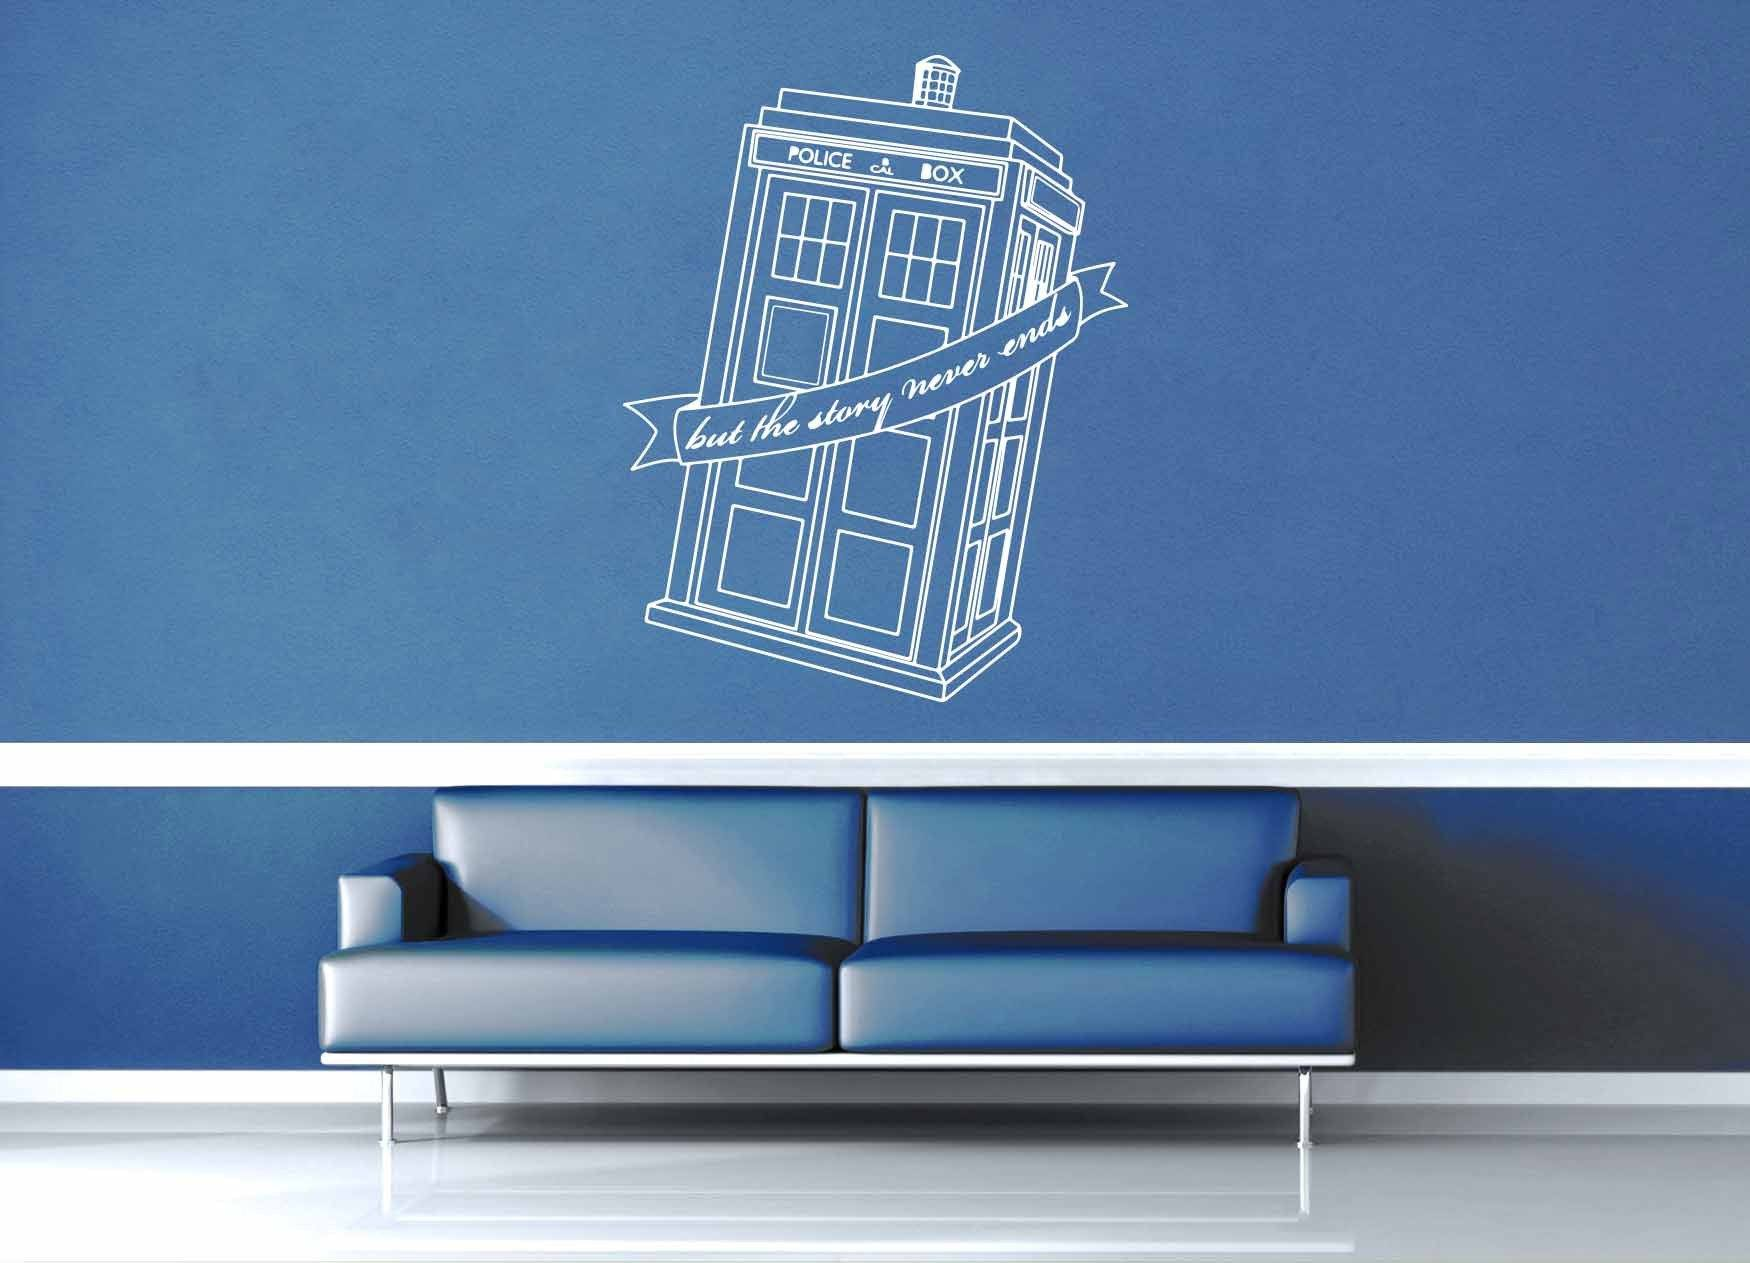 But the Story Never Ends - Doctor Who Quote - Wall Decal